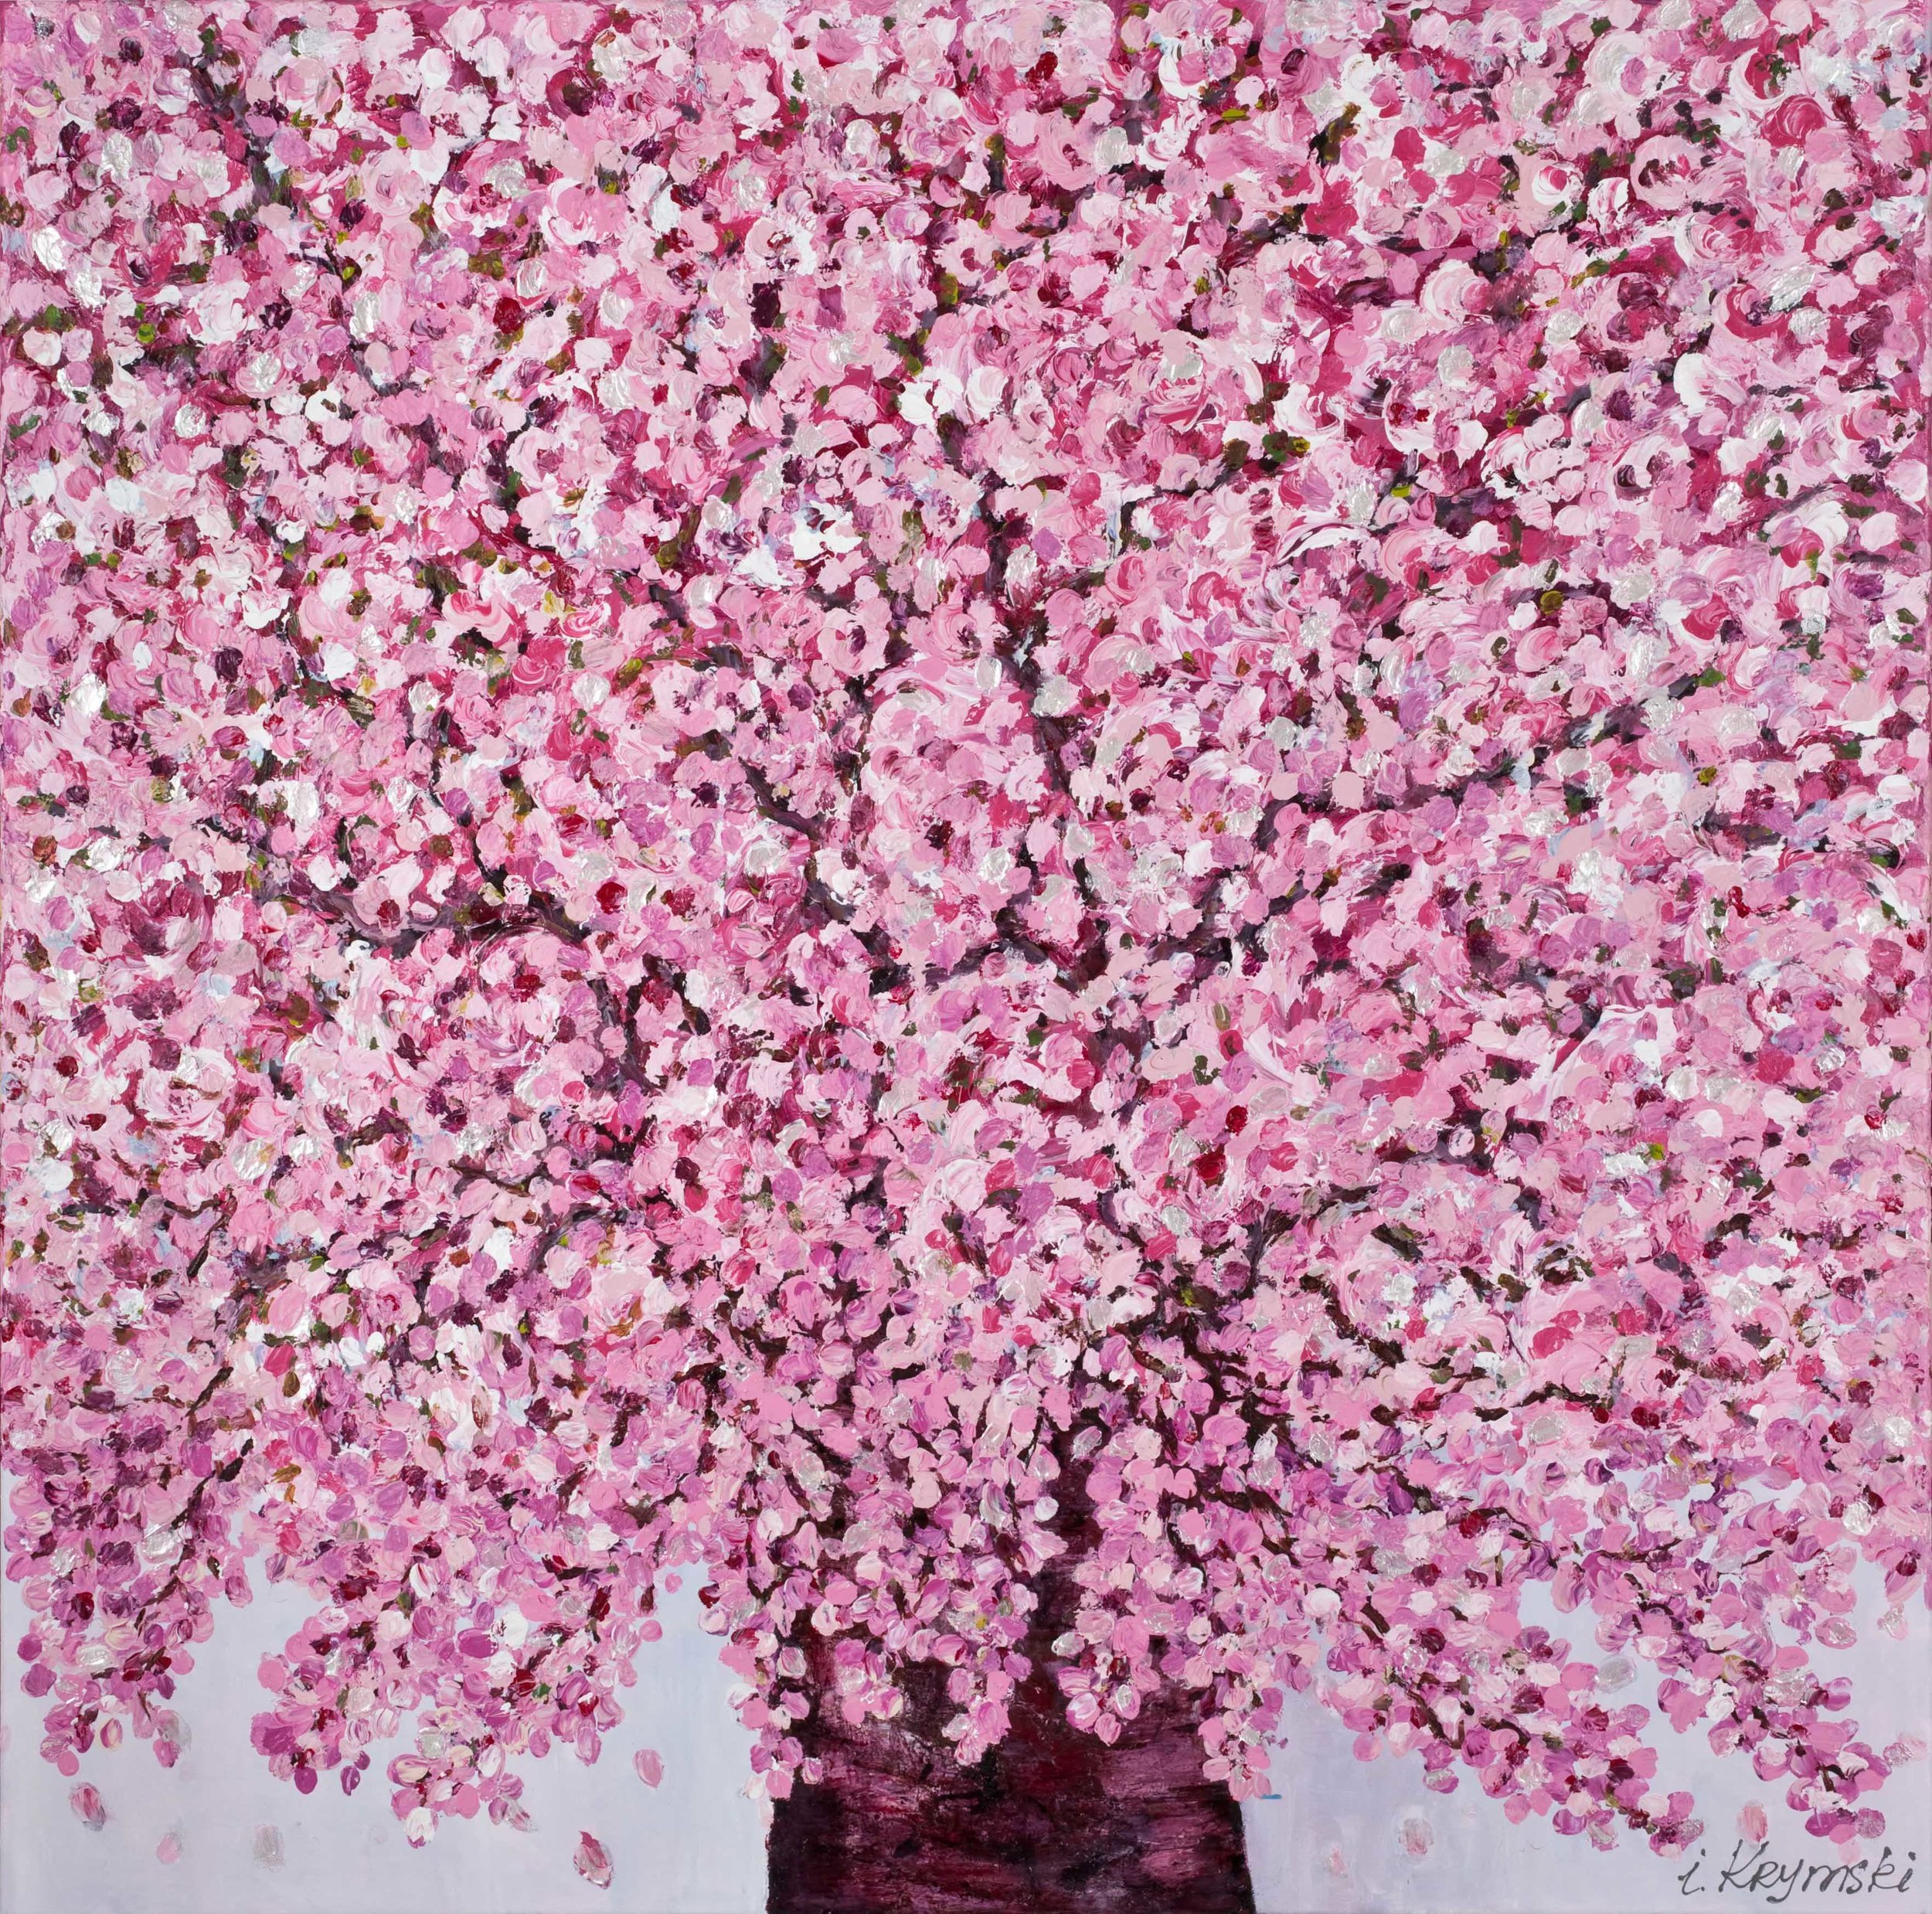 "'The Tree Of Love"". Oil , Acrylic on Canvas. 100 x 100cm"